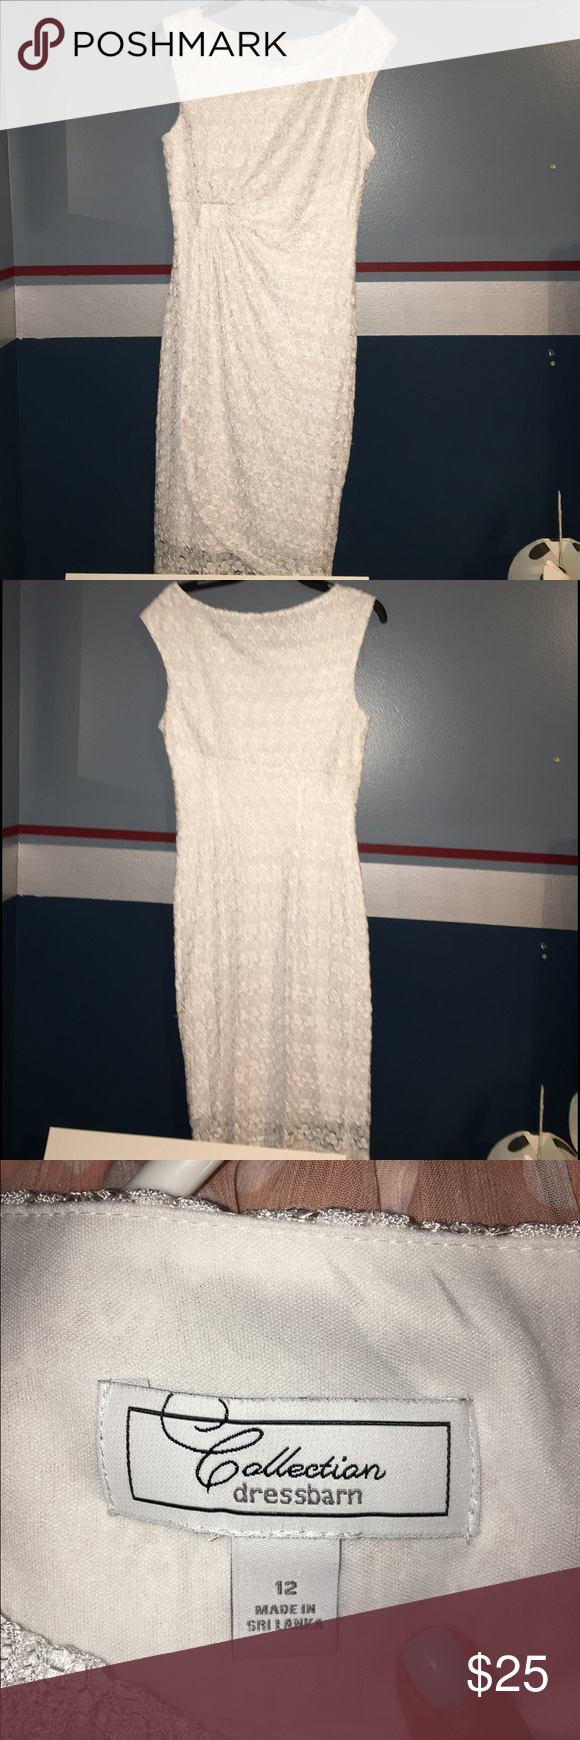 Dress barn white lacey dress Size 12. Dress Barn White lacy dress. Perfect for a bridal shower! Dress Barn Dresses